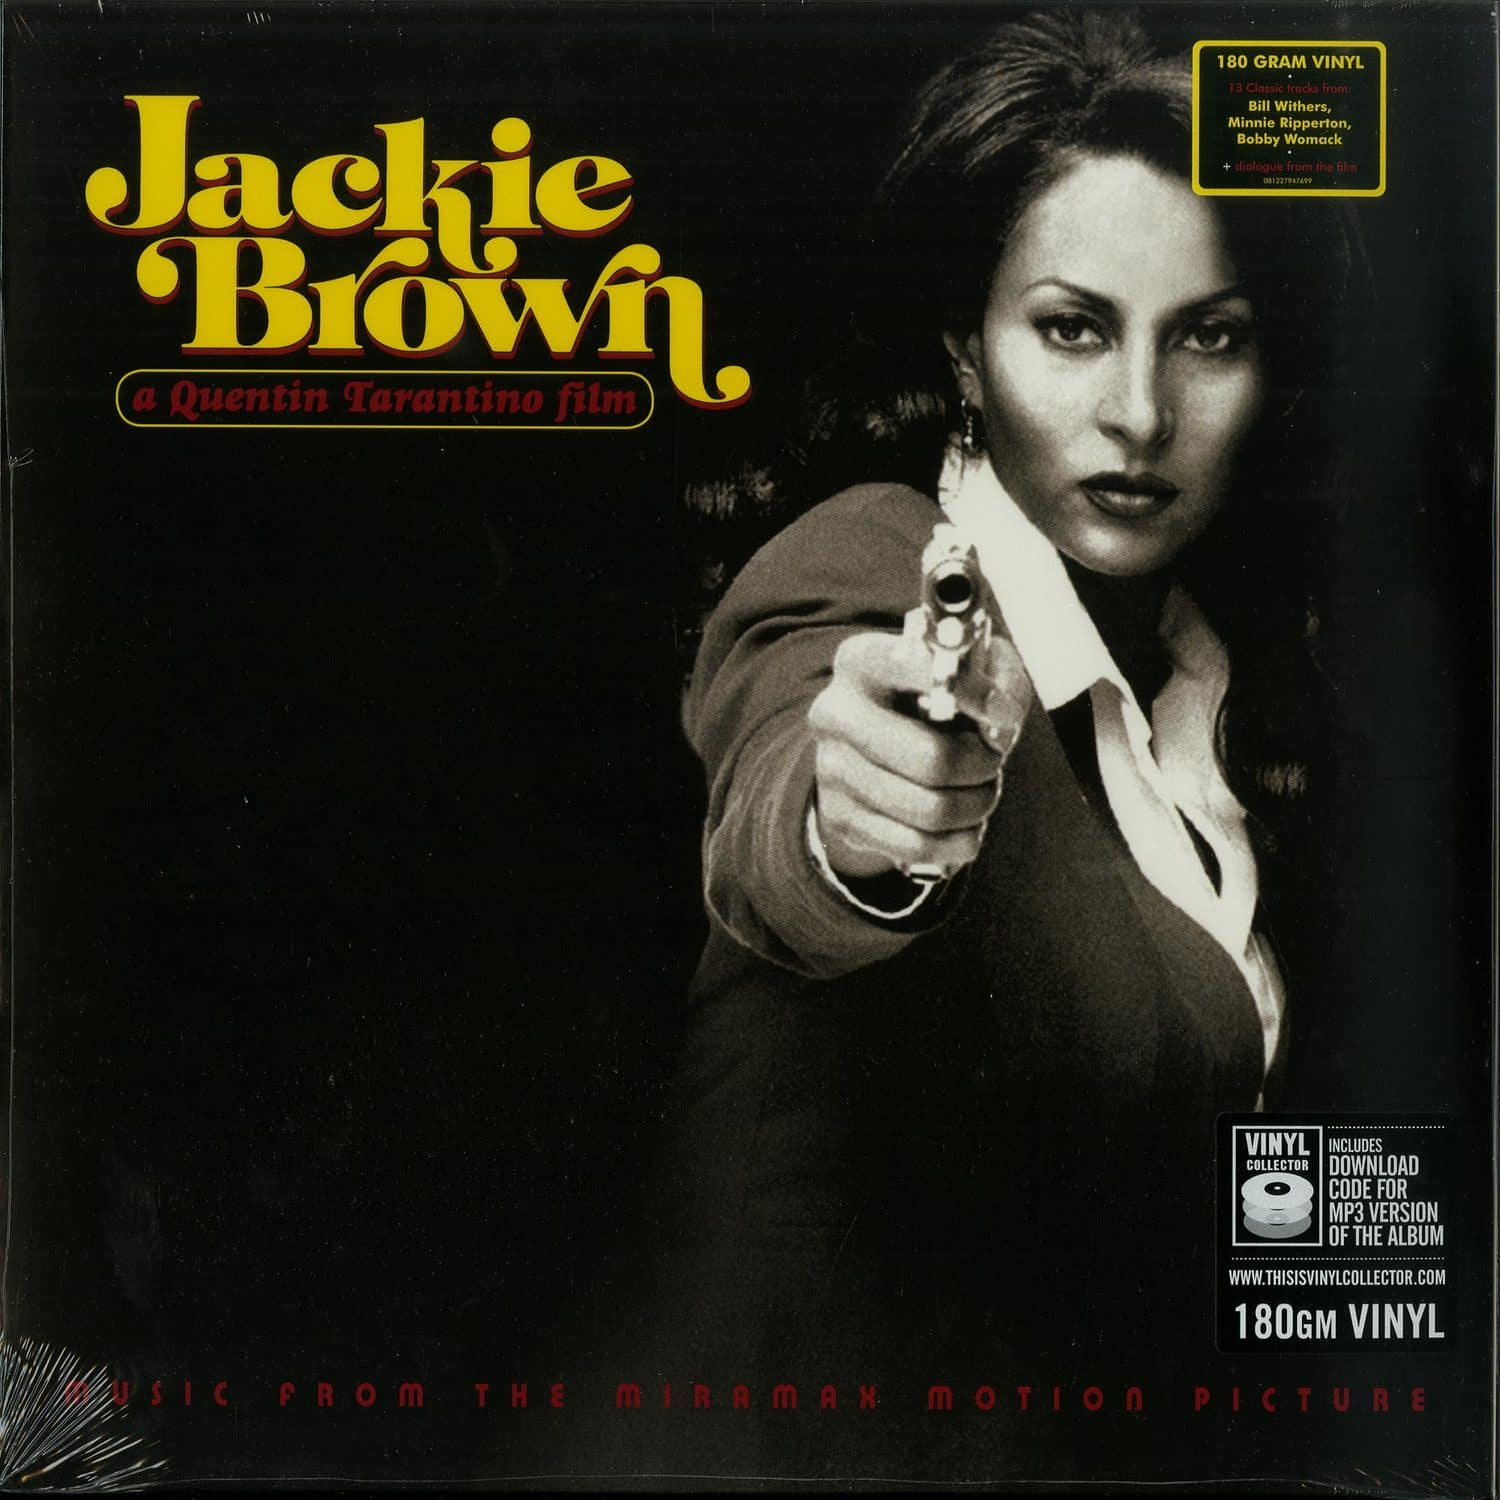 Various Artists - JACKIE BROWN O.S.T.